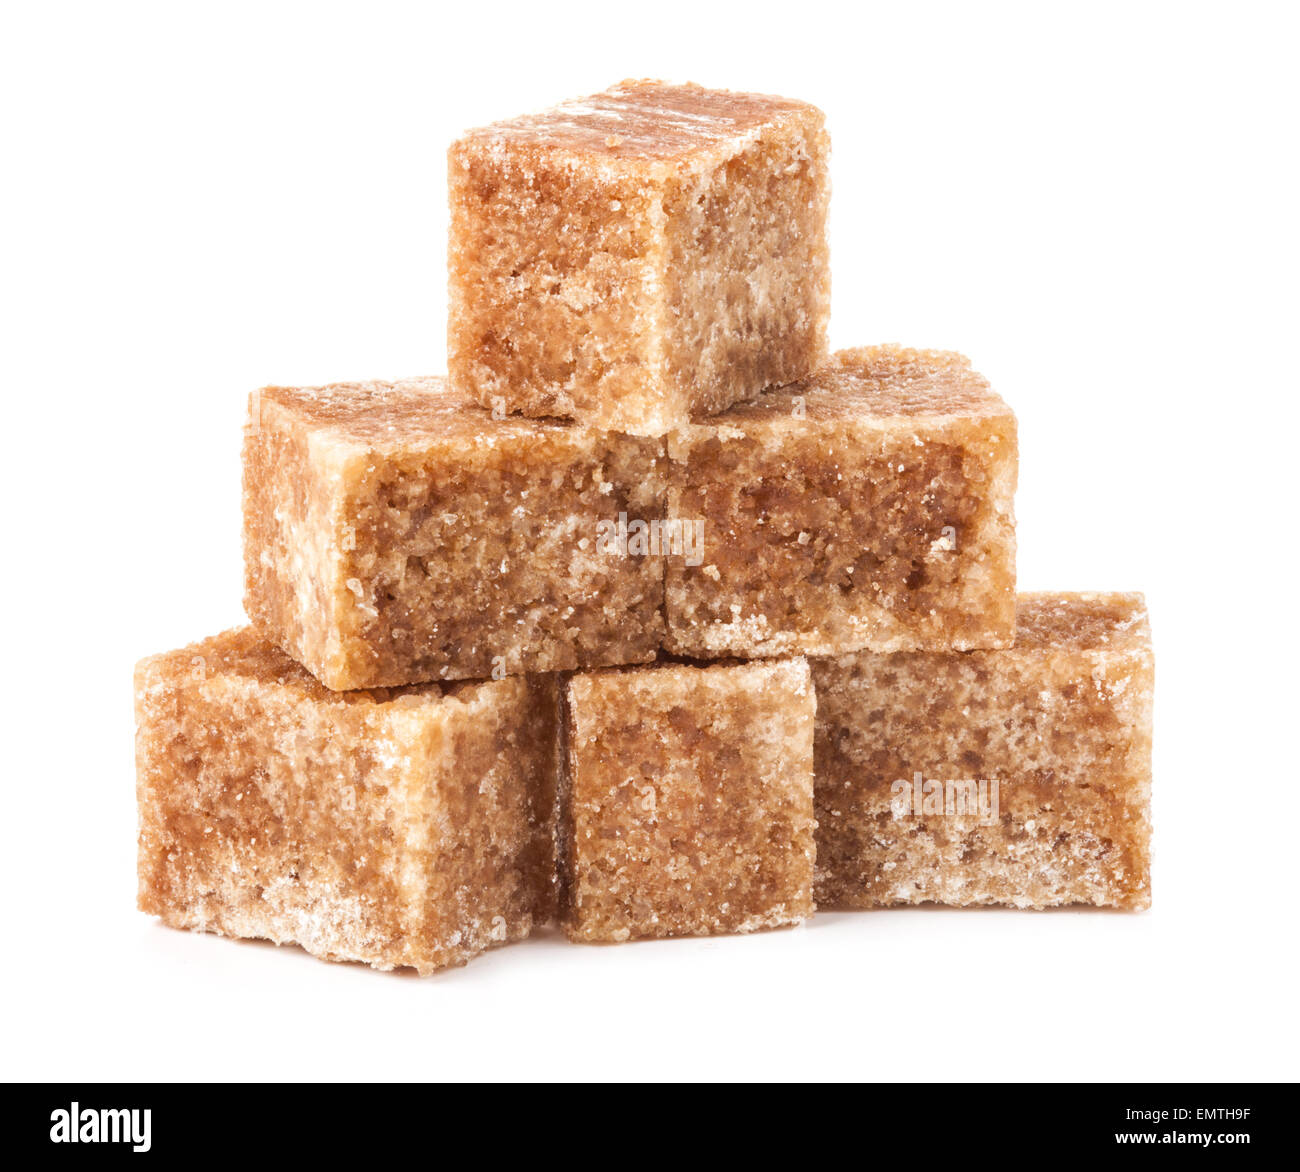 Brown cane sugar cubes isolated on white background - Stock Image